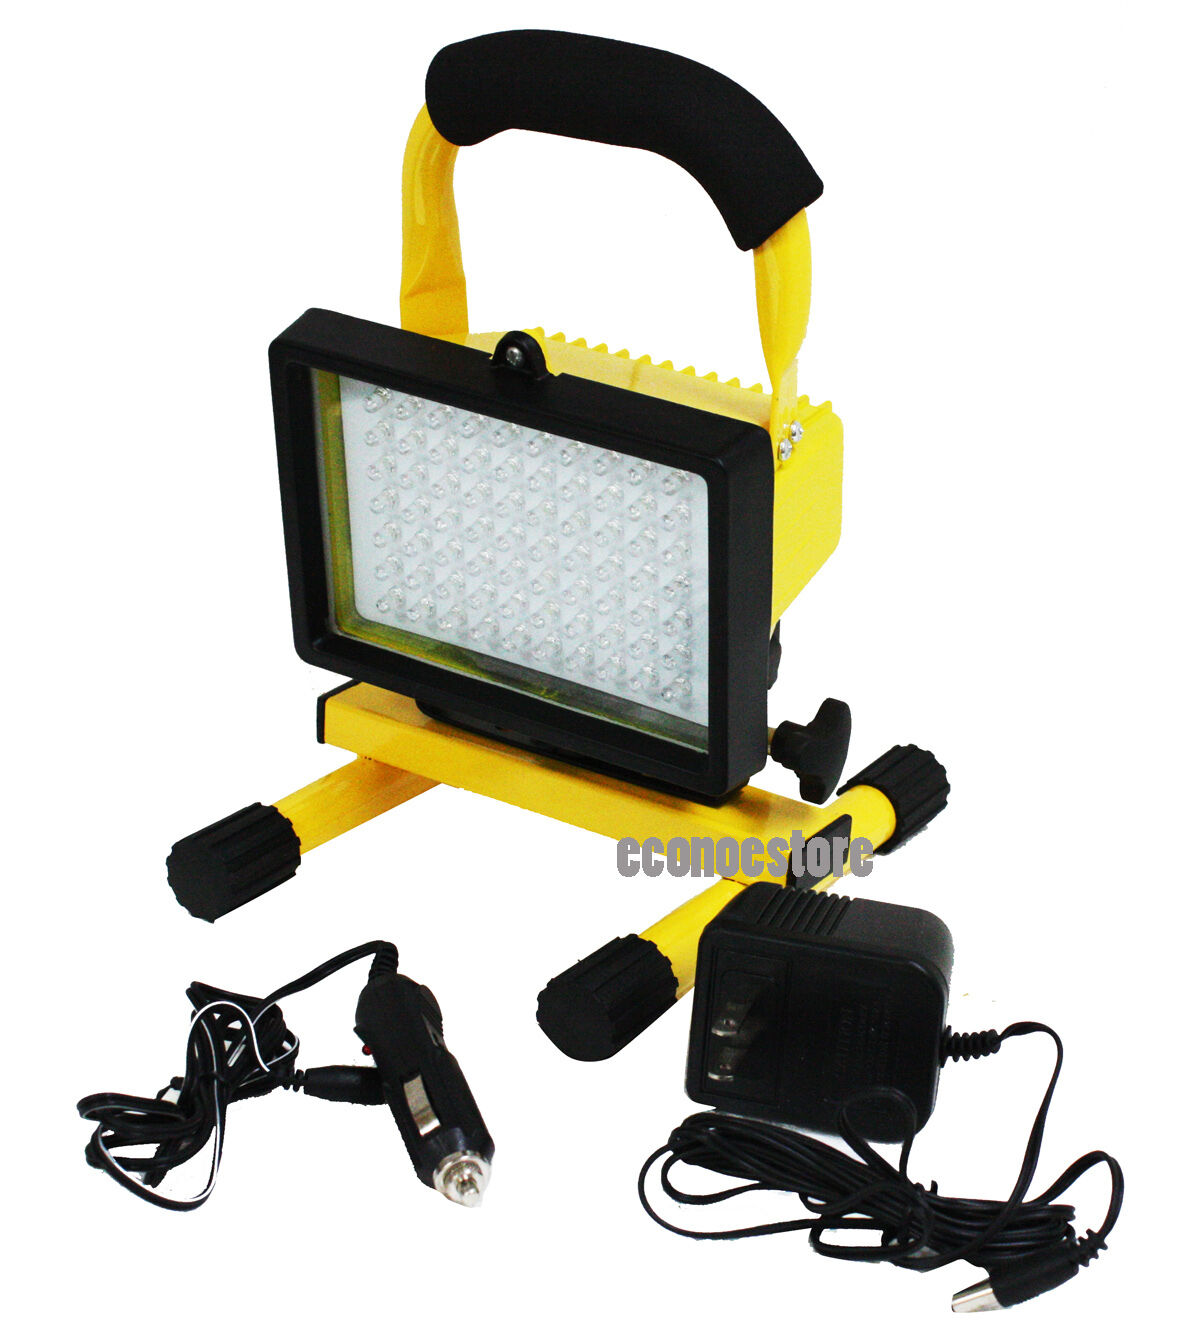 Work Light Total Tools: Construction Work: Led Rechargeable Construction Work Lights